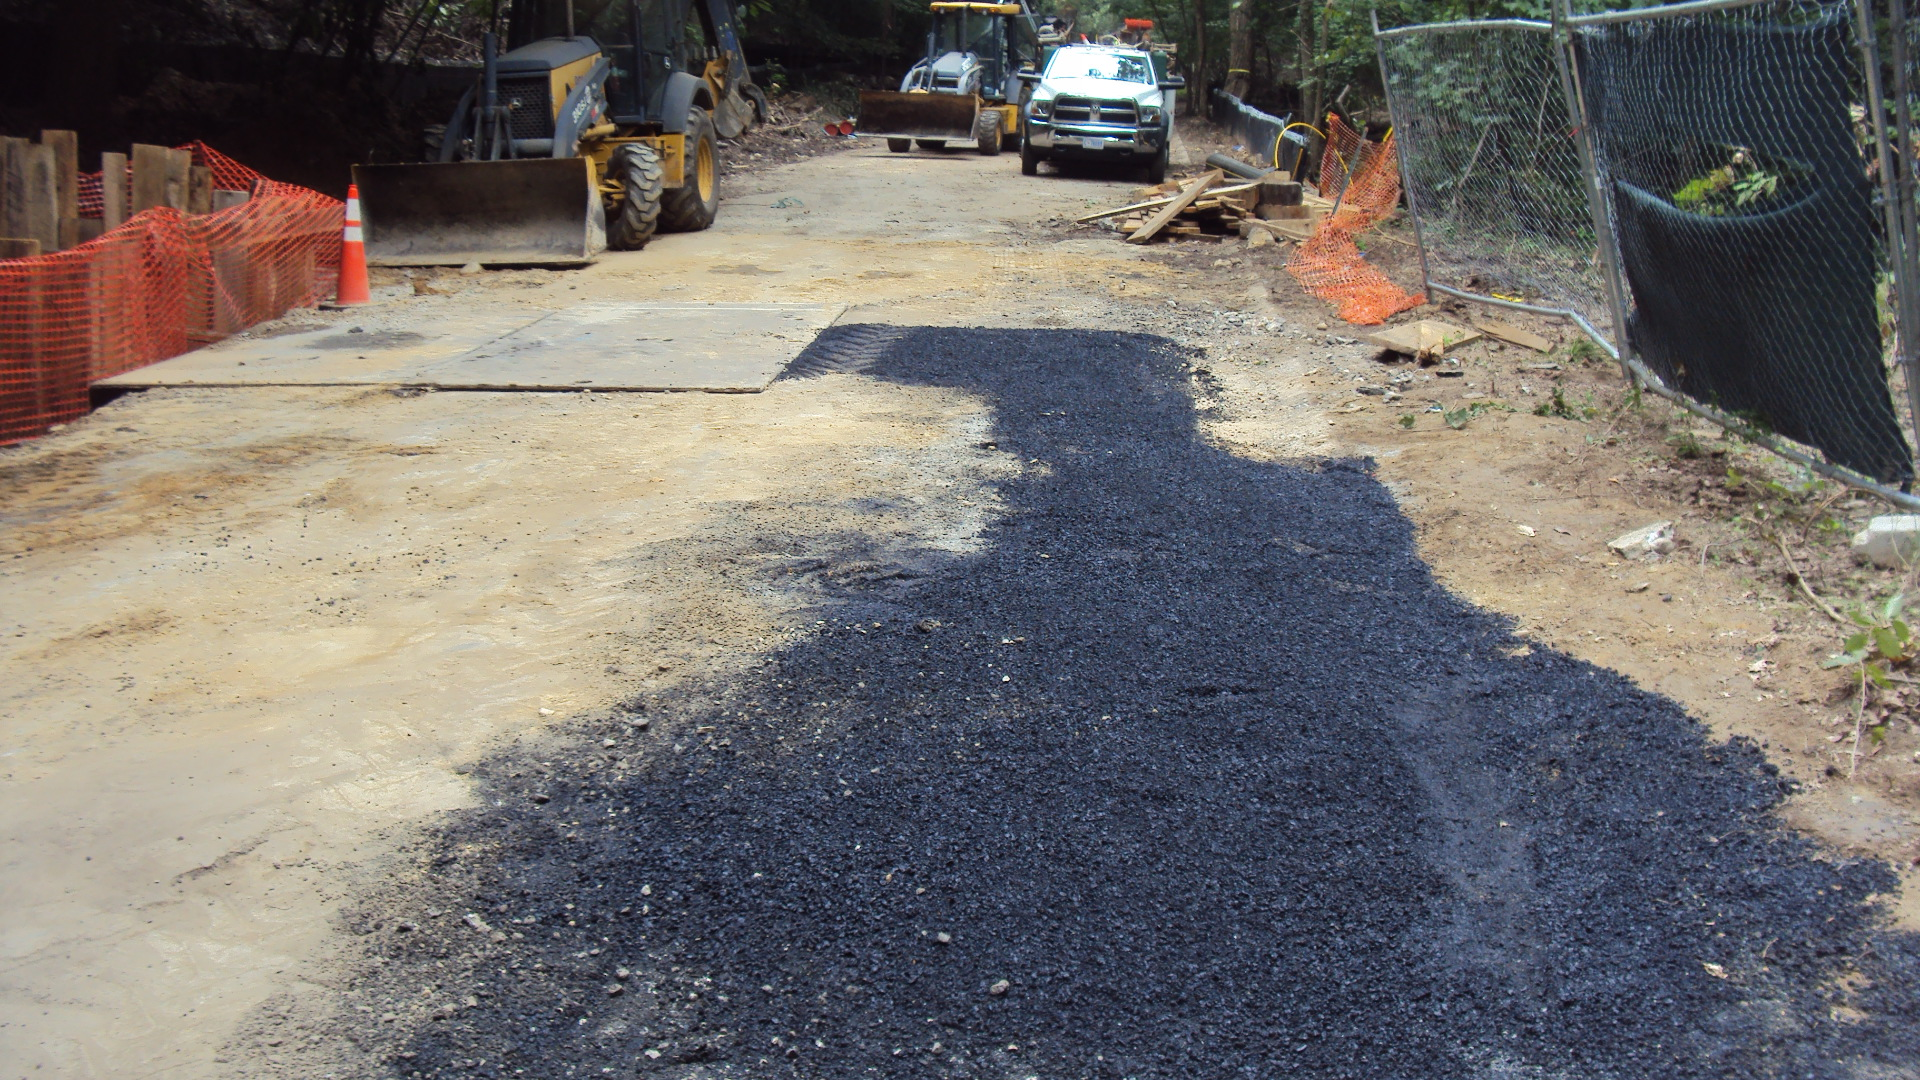 Backfill topped with asphalt to prevent erosion between now and trail construction